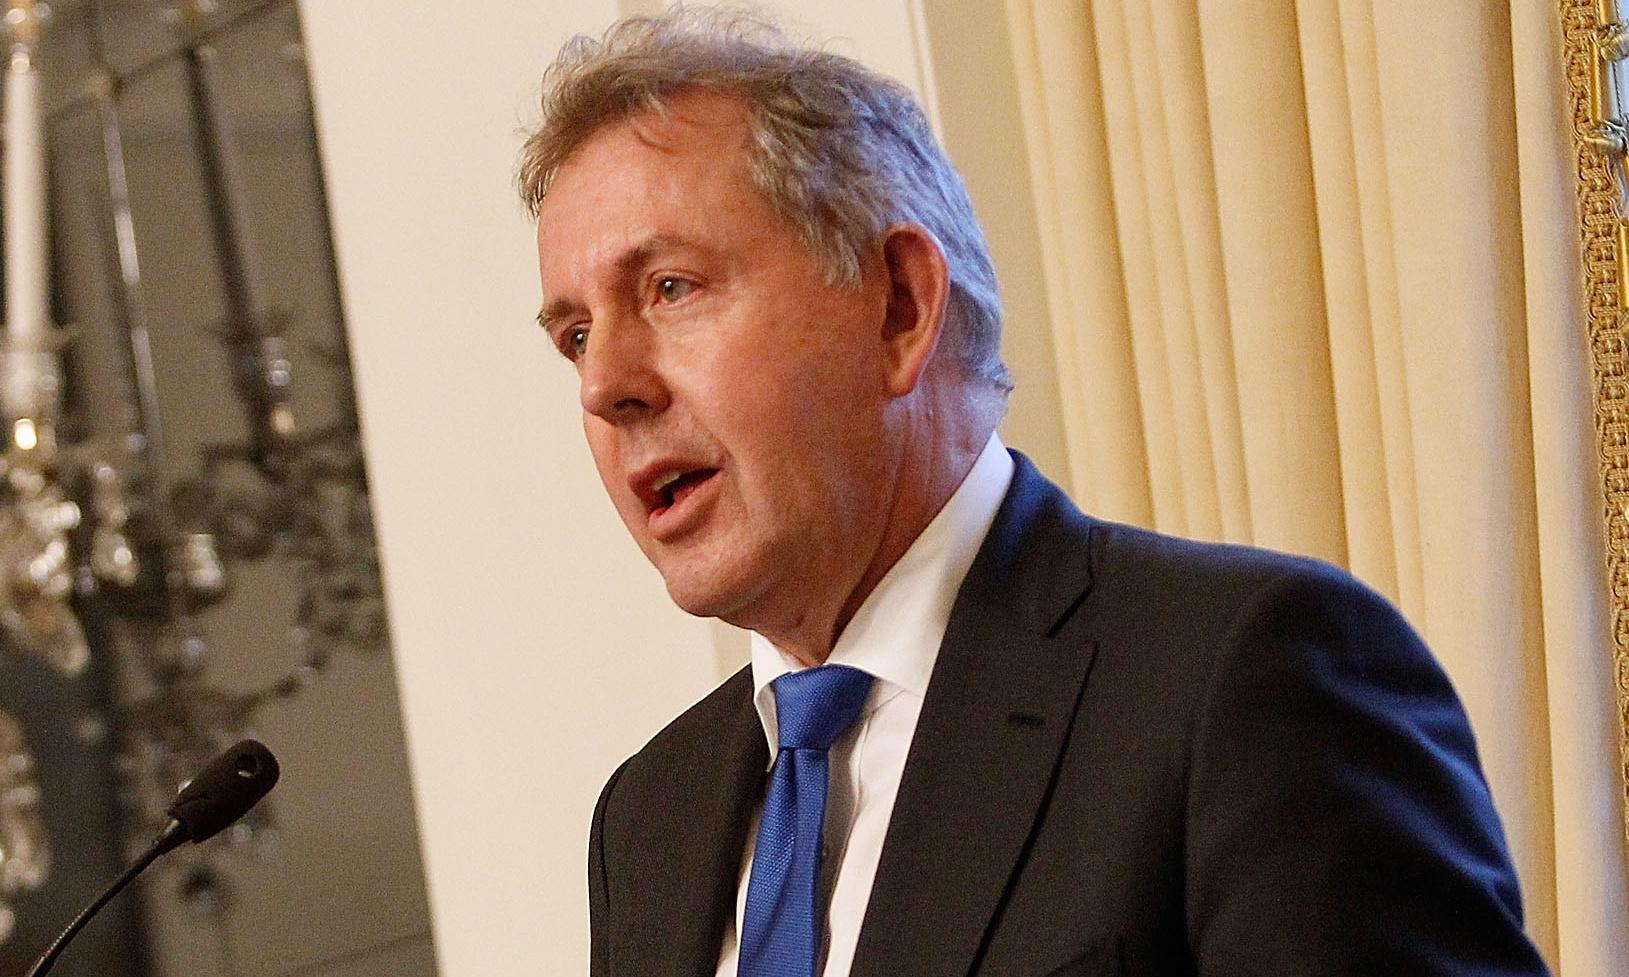 Suspected leaker of Kim Darroch cables on Trump 'identified'